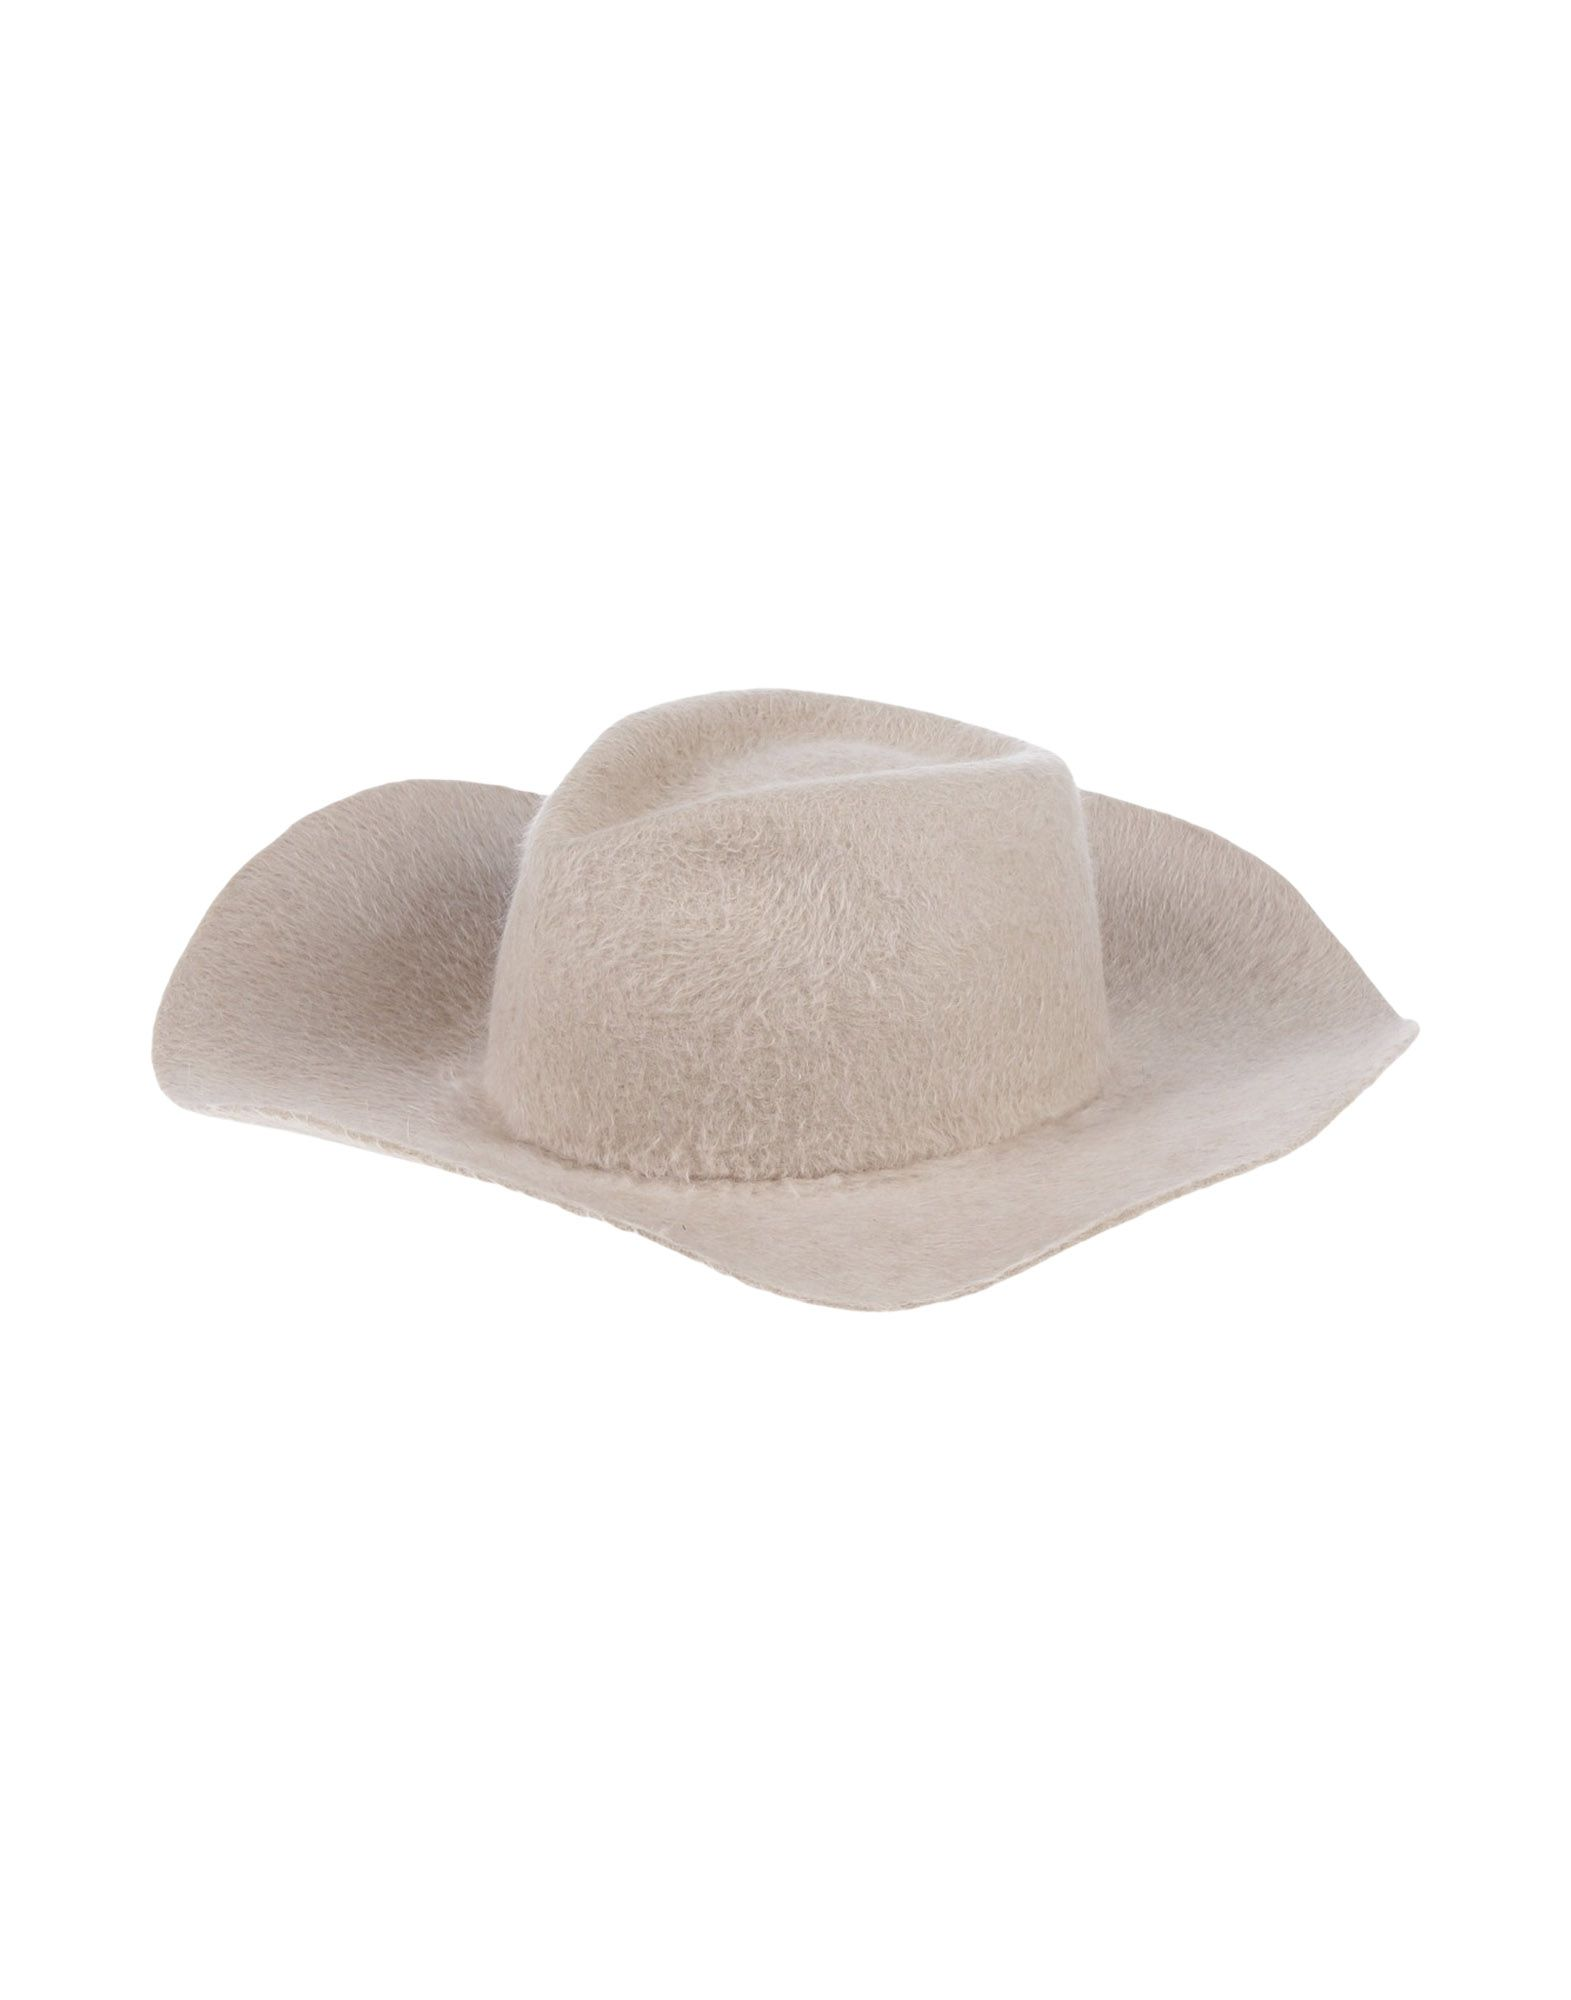 GLADYS TAMEZ Hat in Ivory